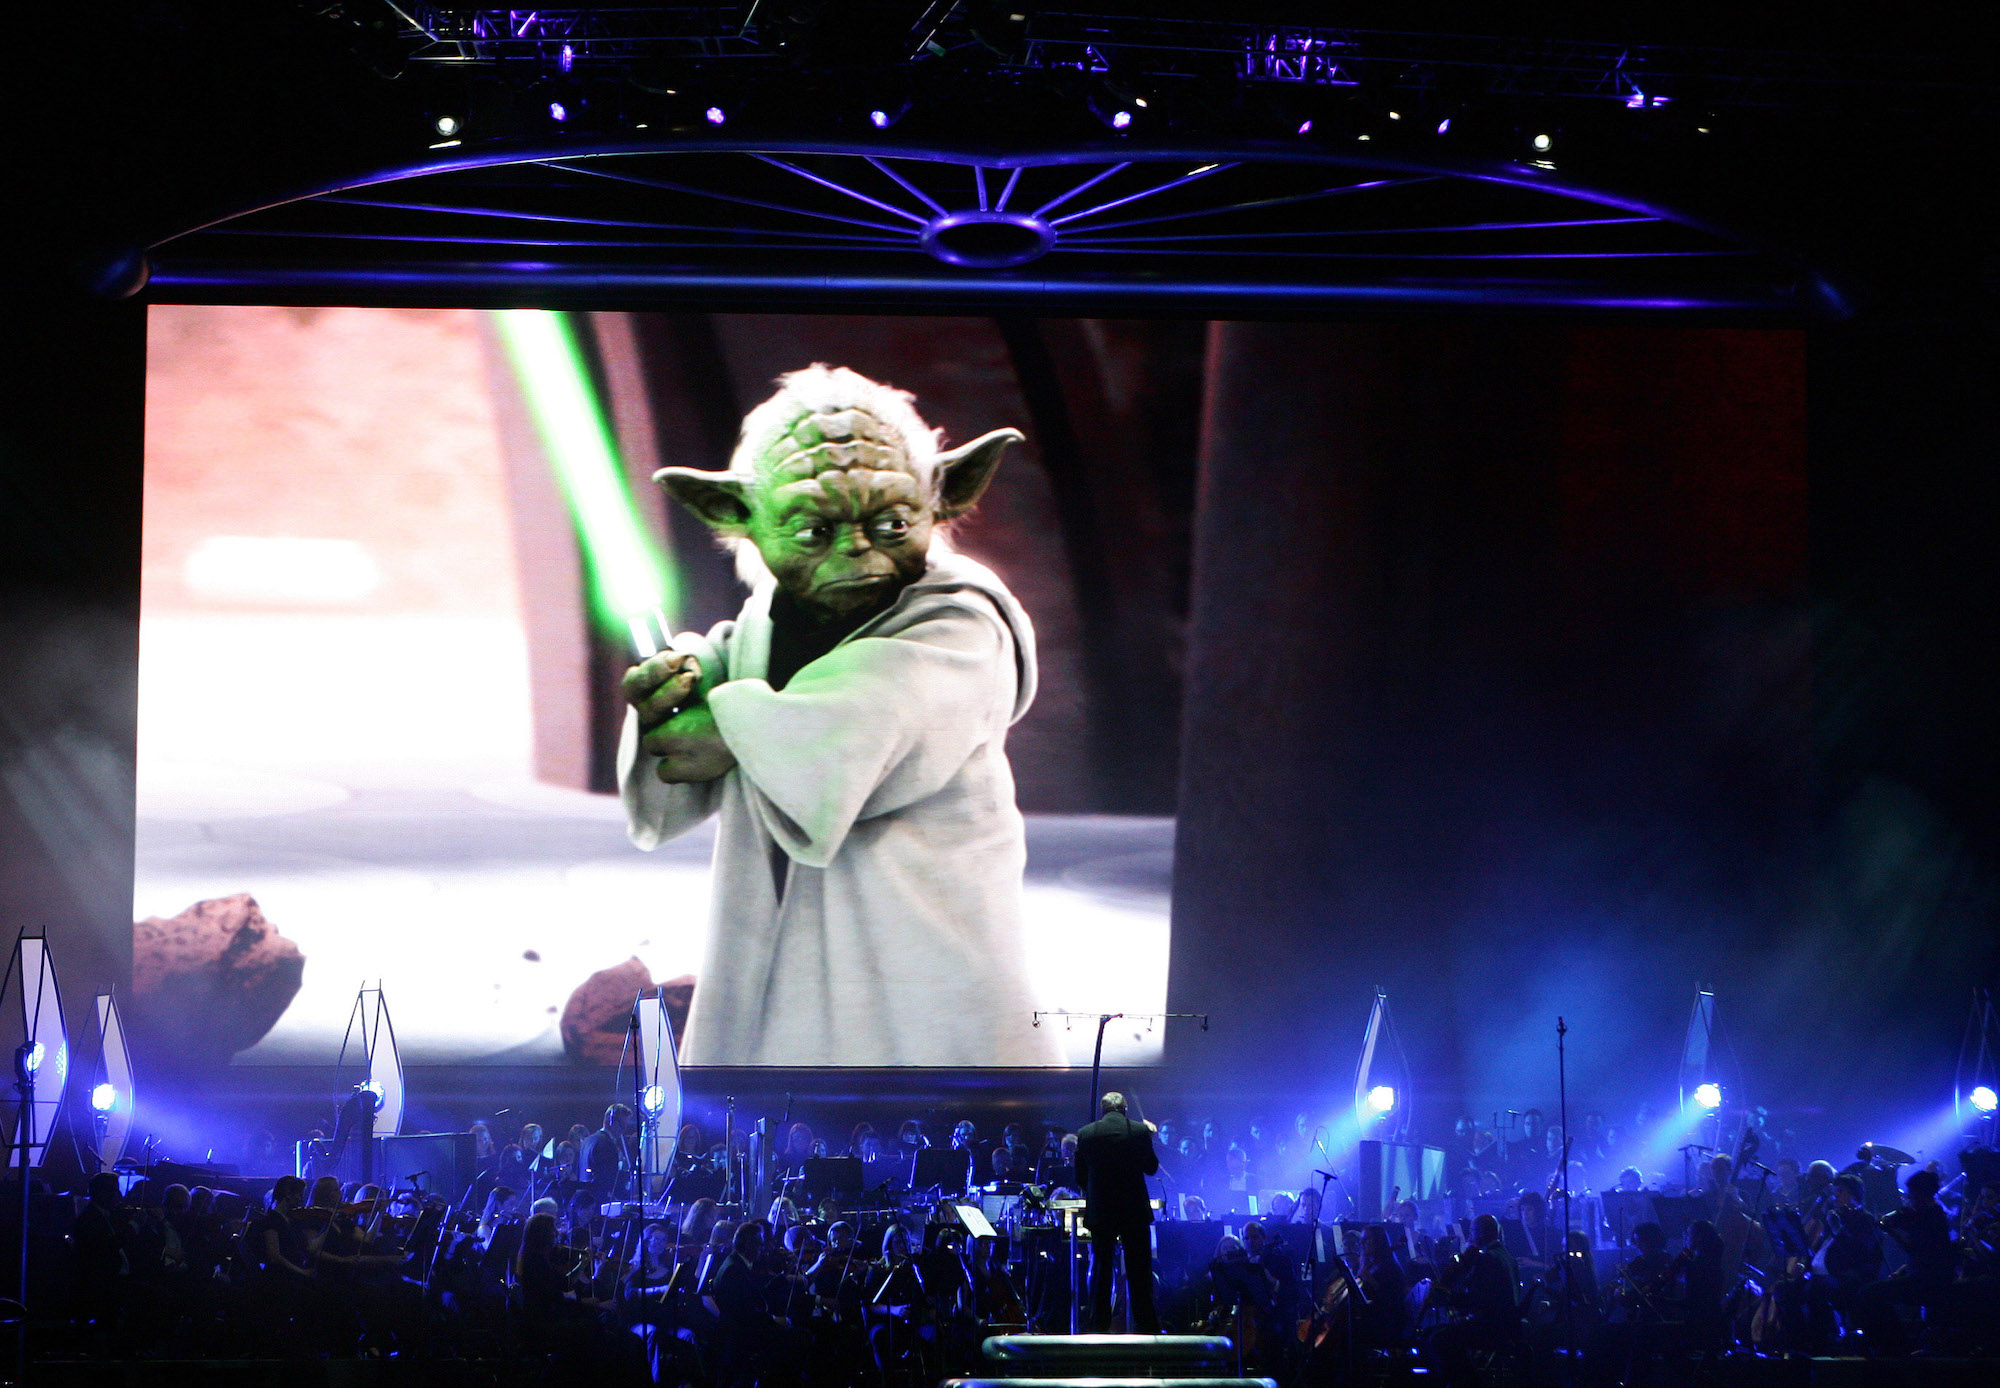 The Royal Philharmonic Orchestra conducted by John Williams performs at Star Wars in Concert on Dec. 9, 2009, in Kansas City, MO